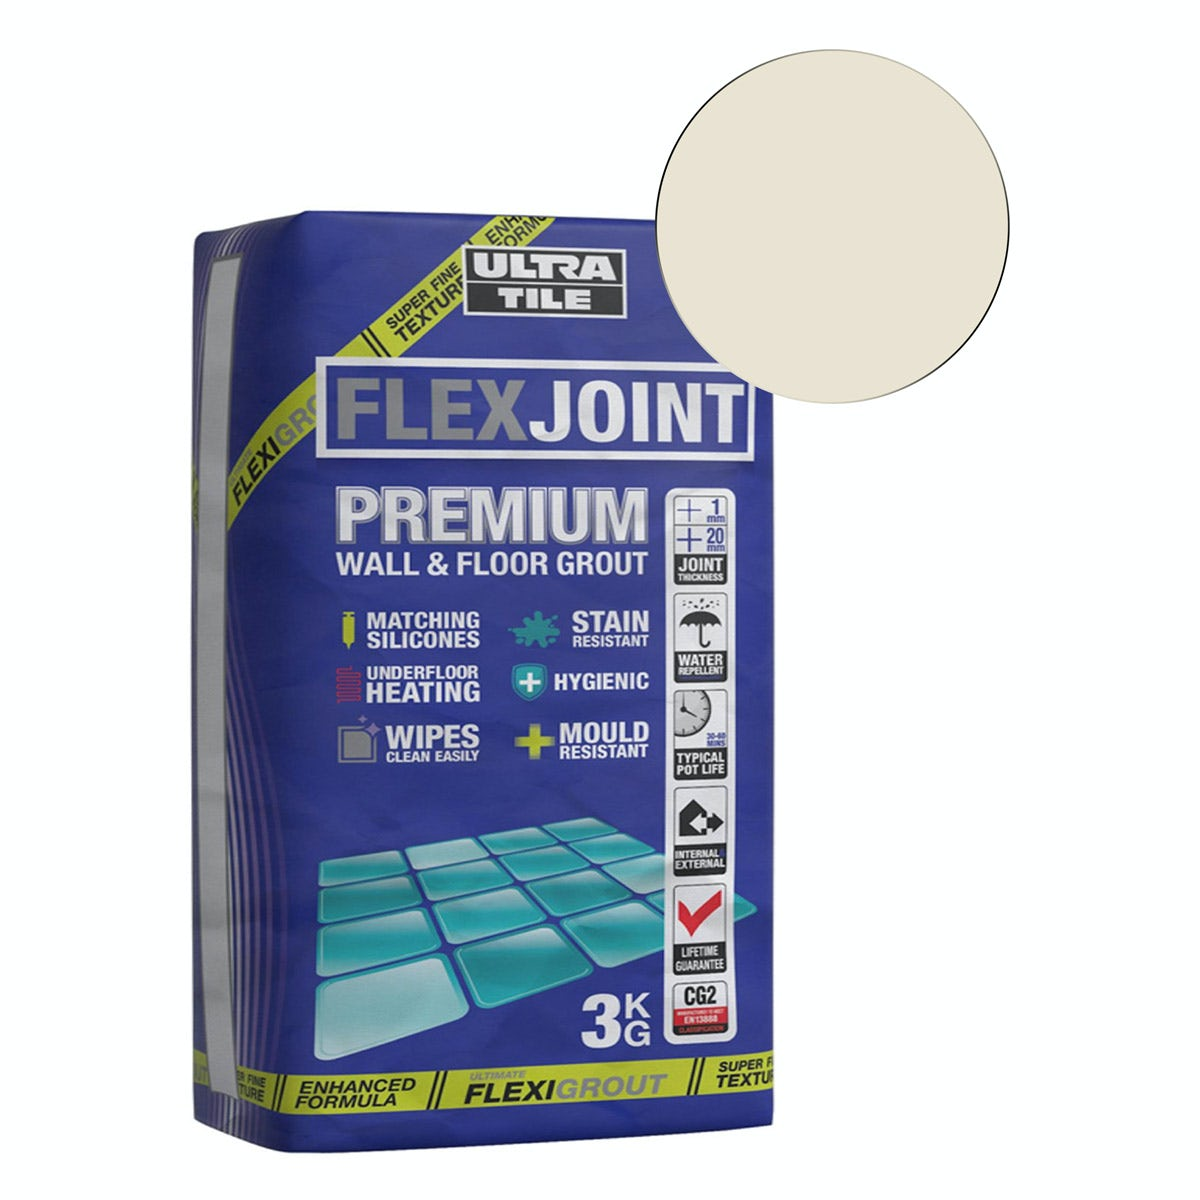 Ultra Tile Flexjoint Premium Cream Wall Floor Grout